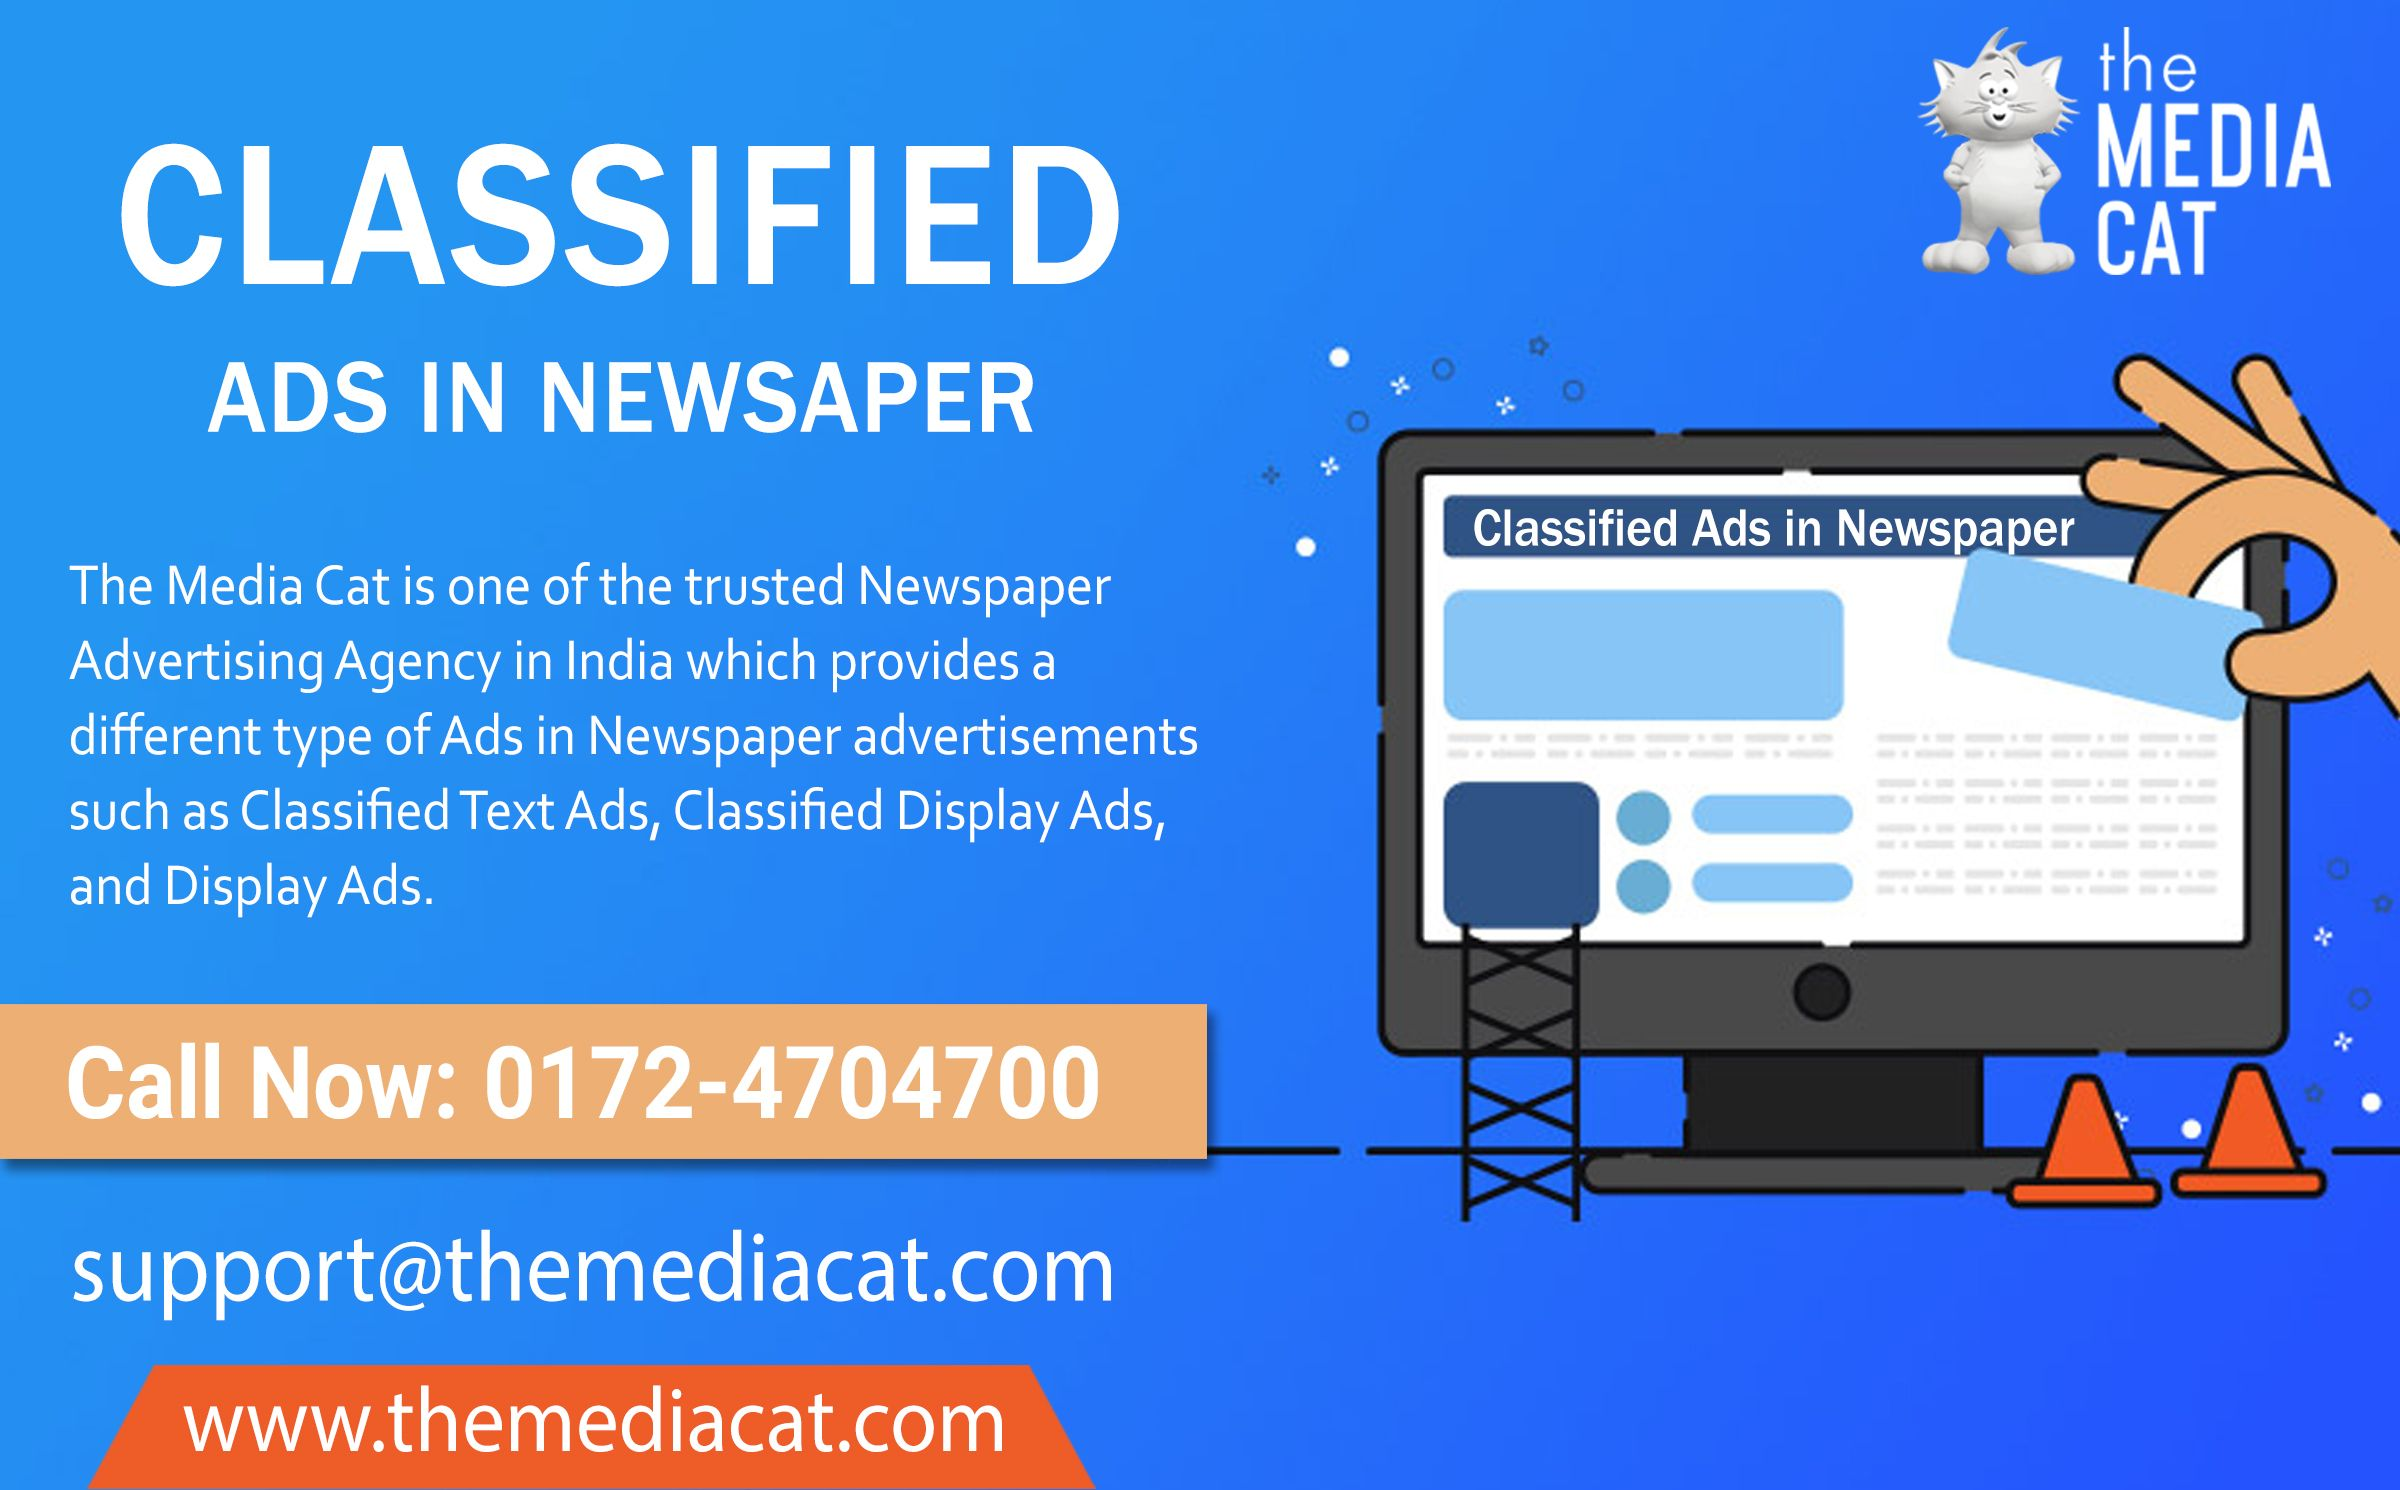 Classified Ads playing a dominant role in the history of